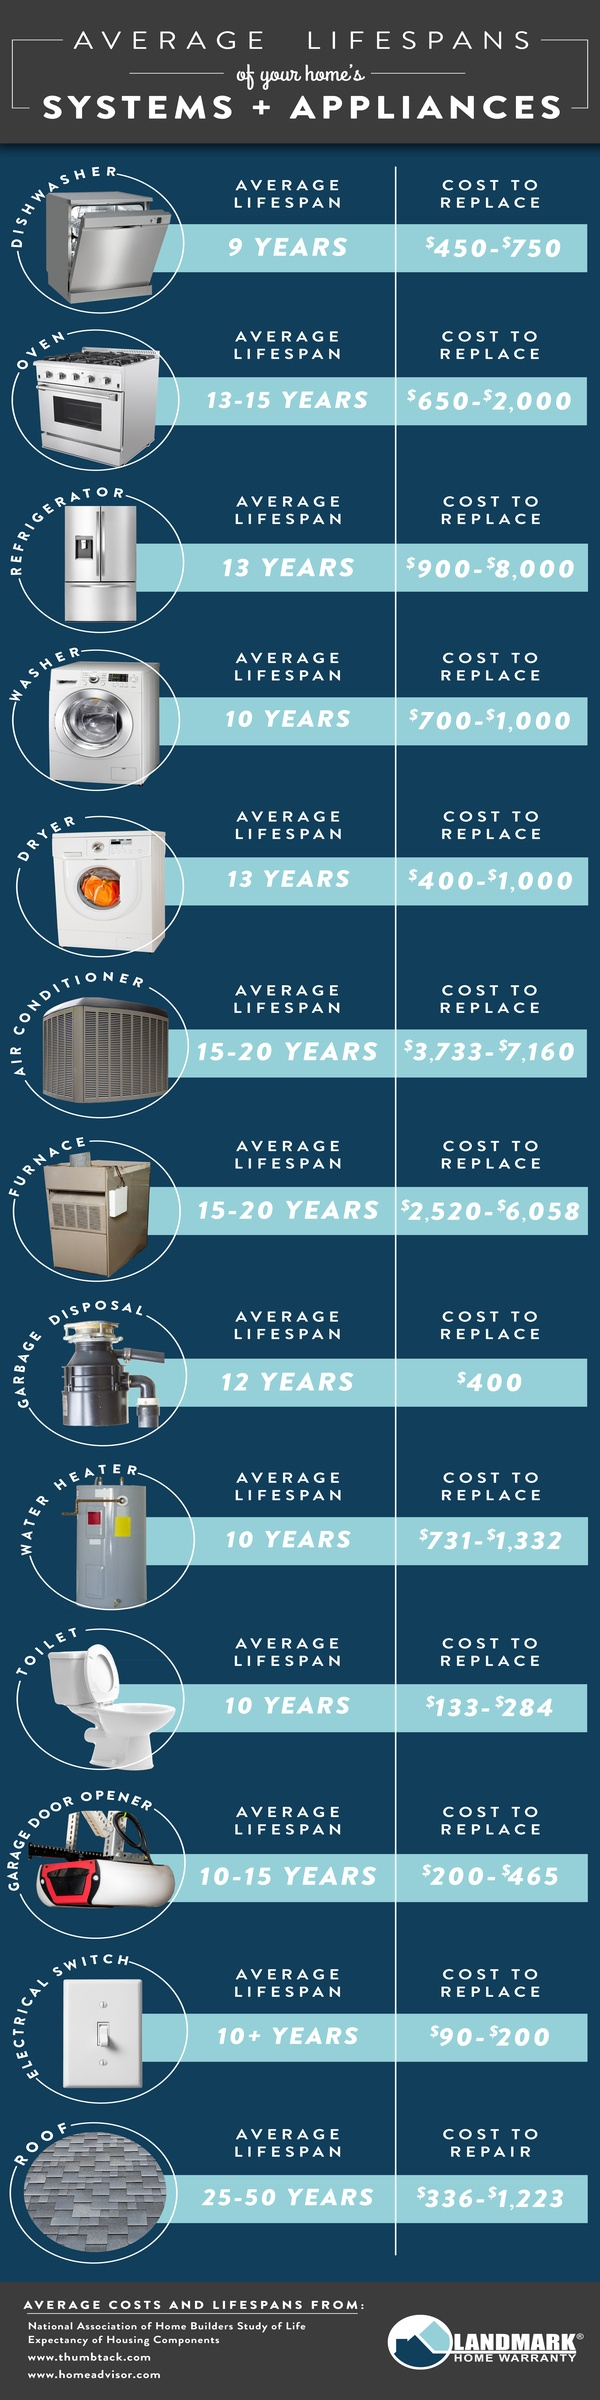 Average lifespan of appliances infographic